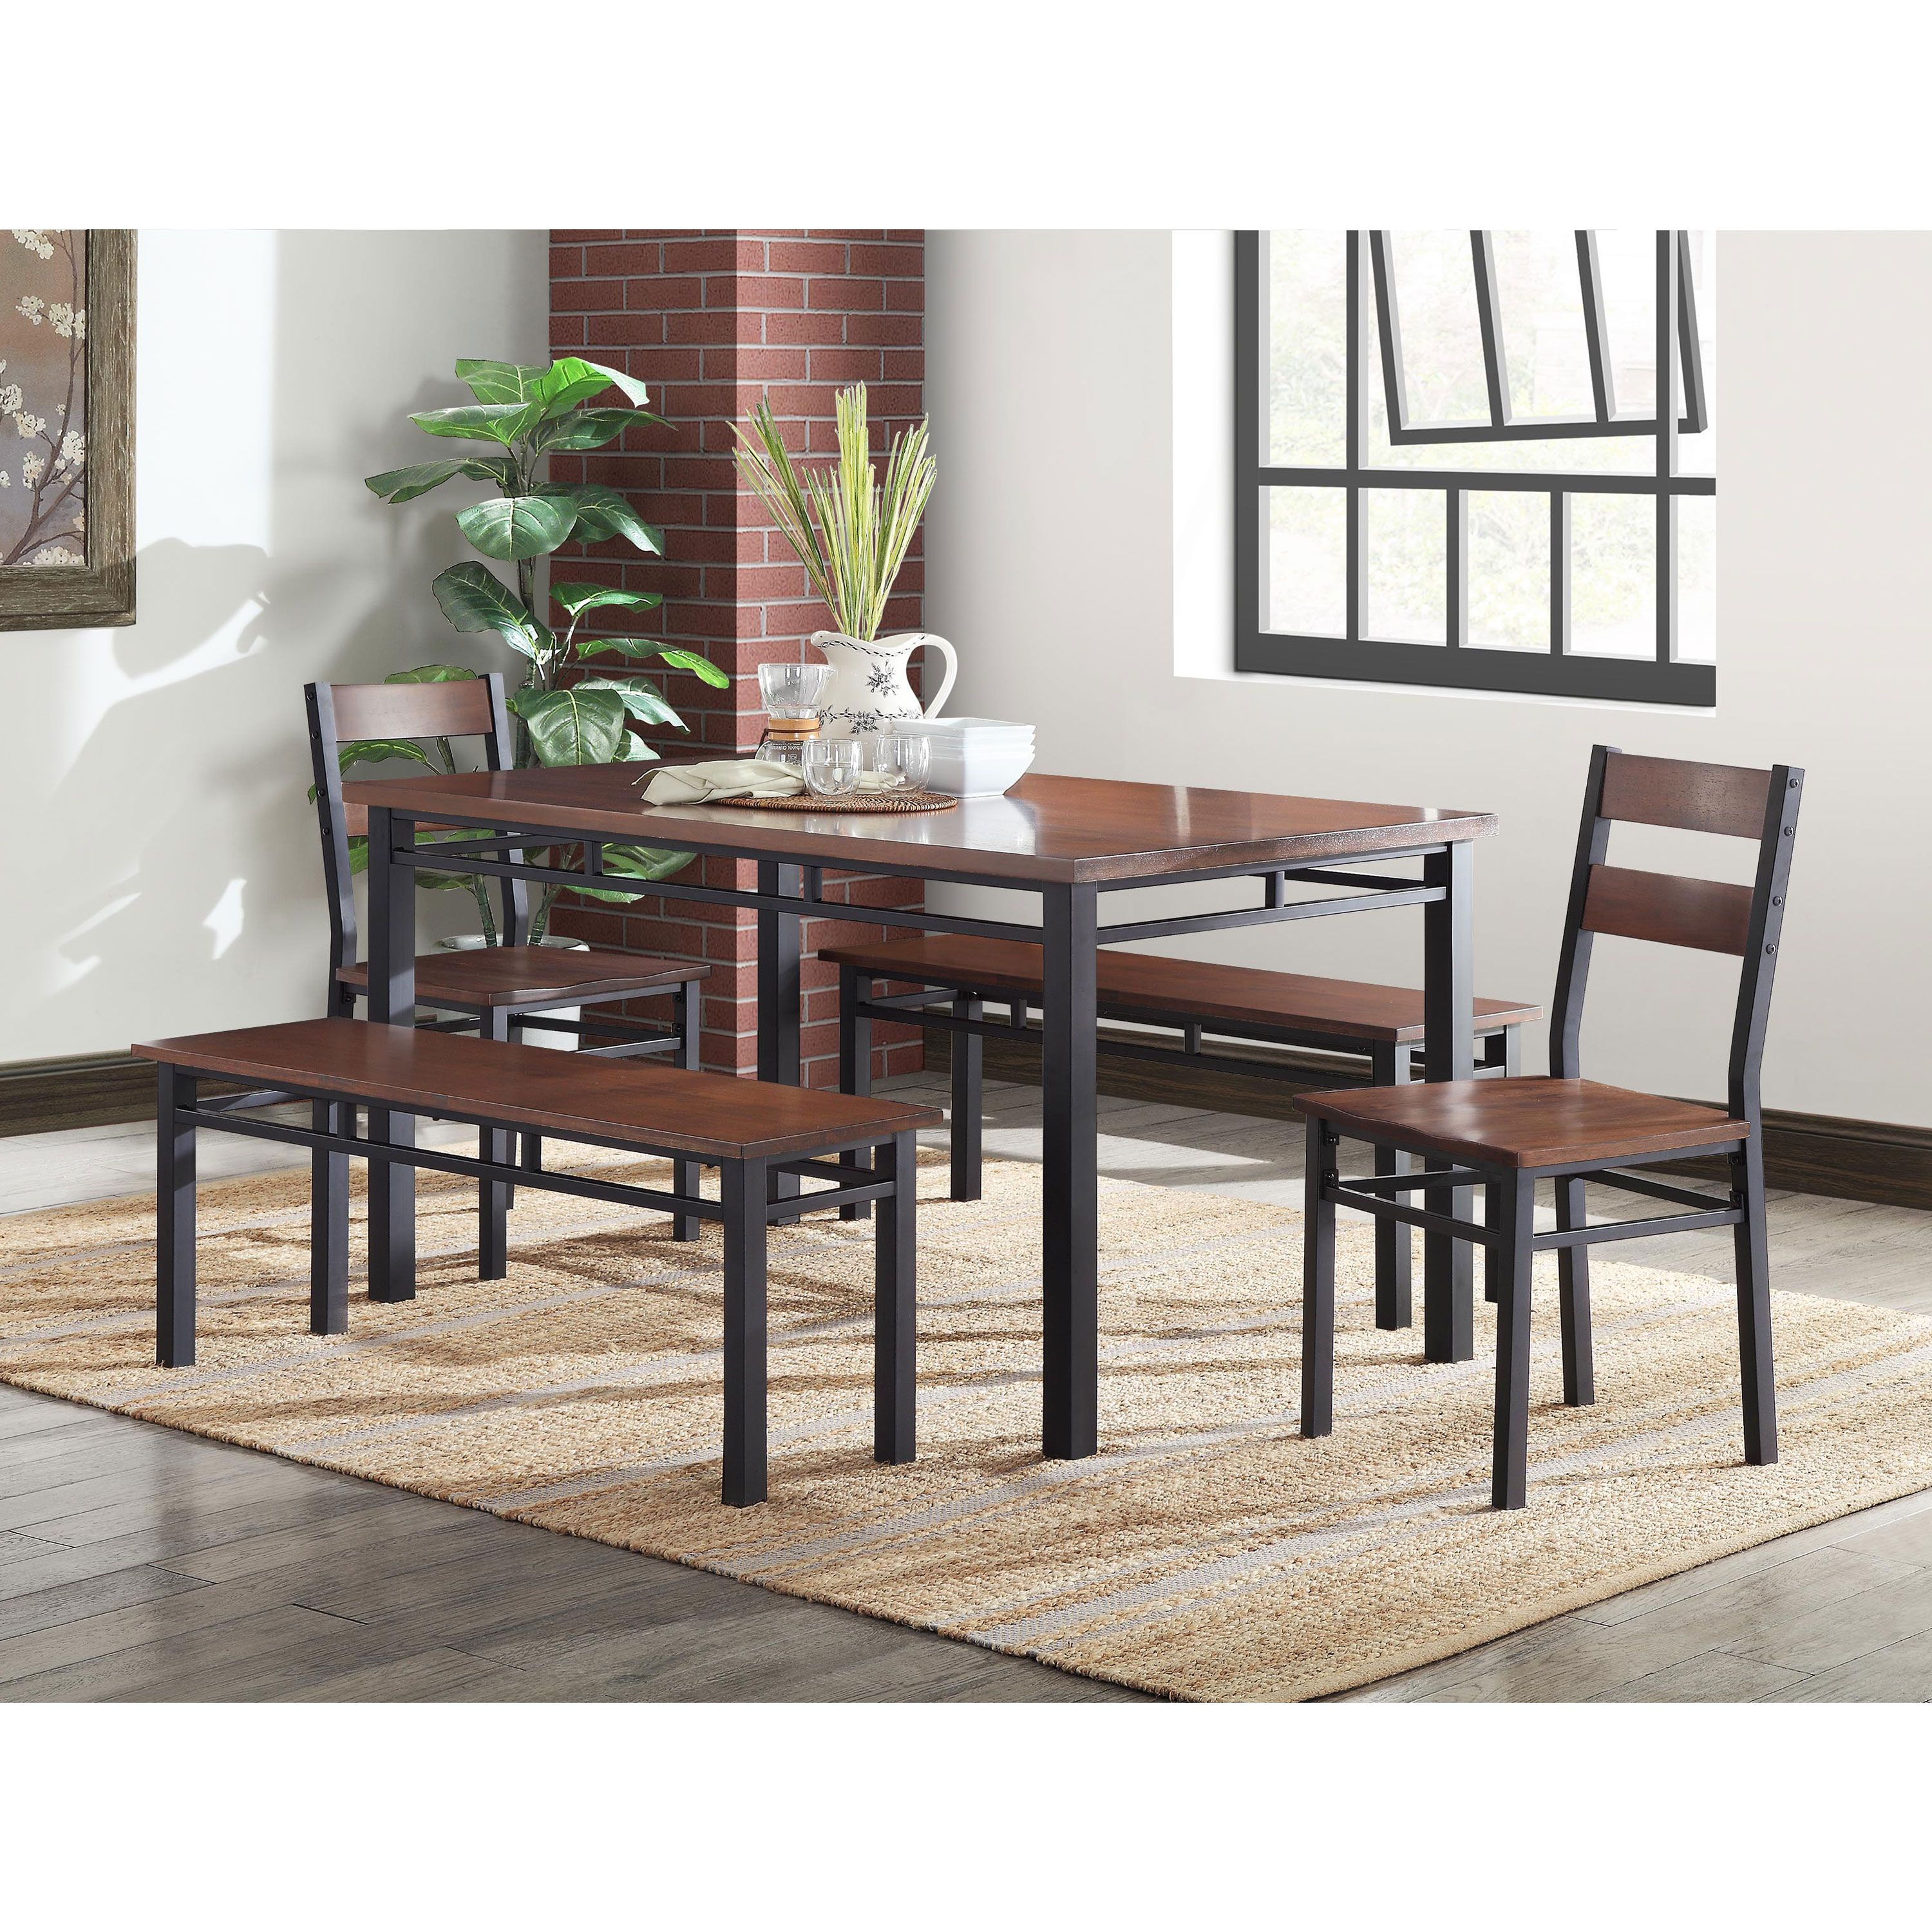 Home With Images Dining Chairs Industrial Dining Chairs